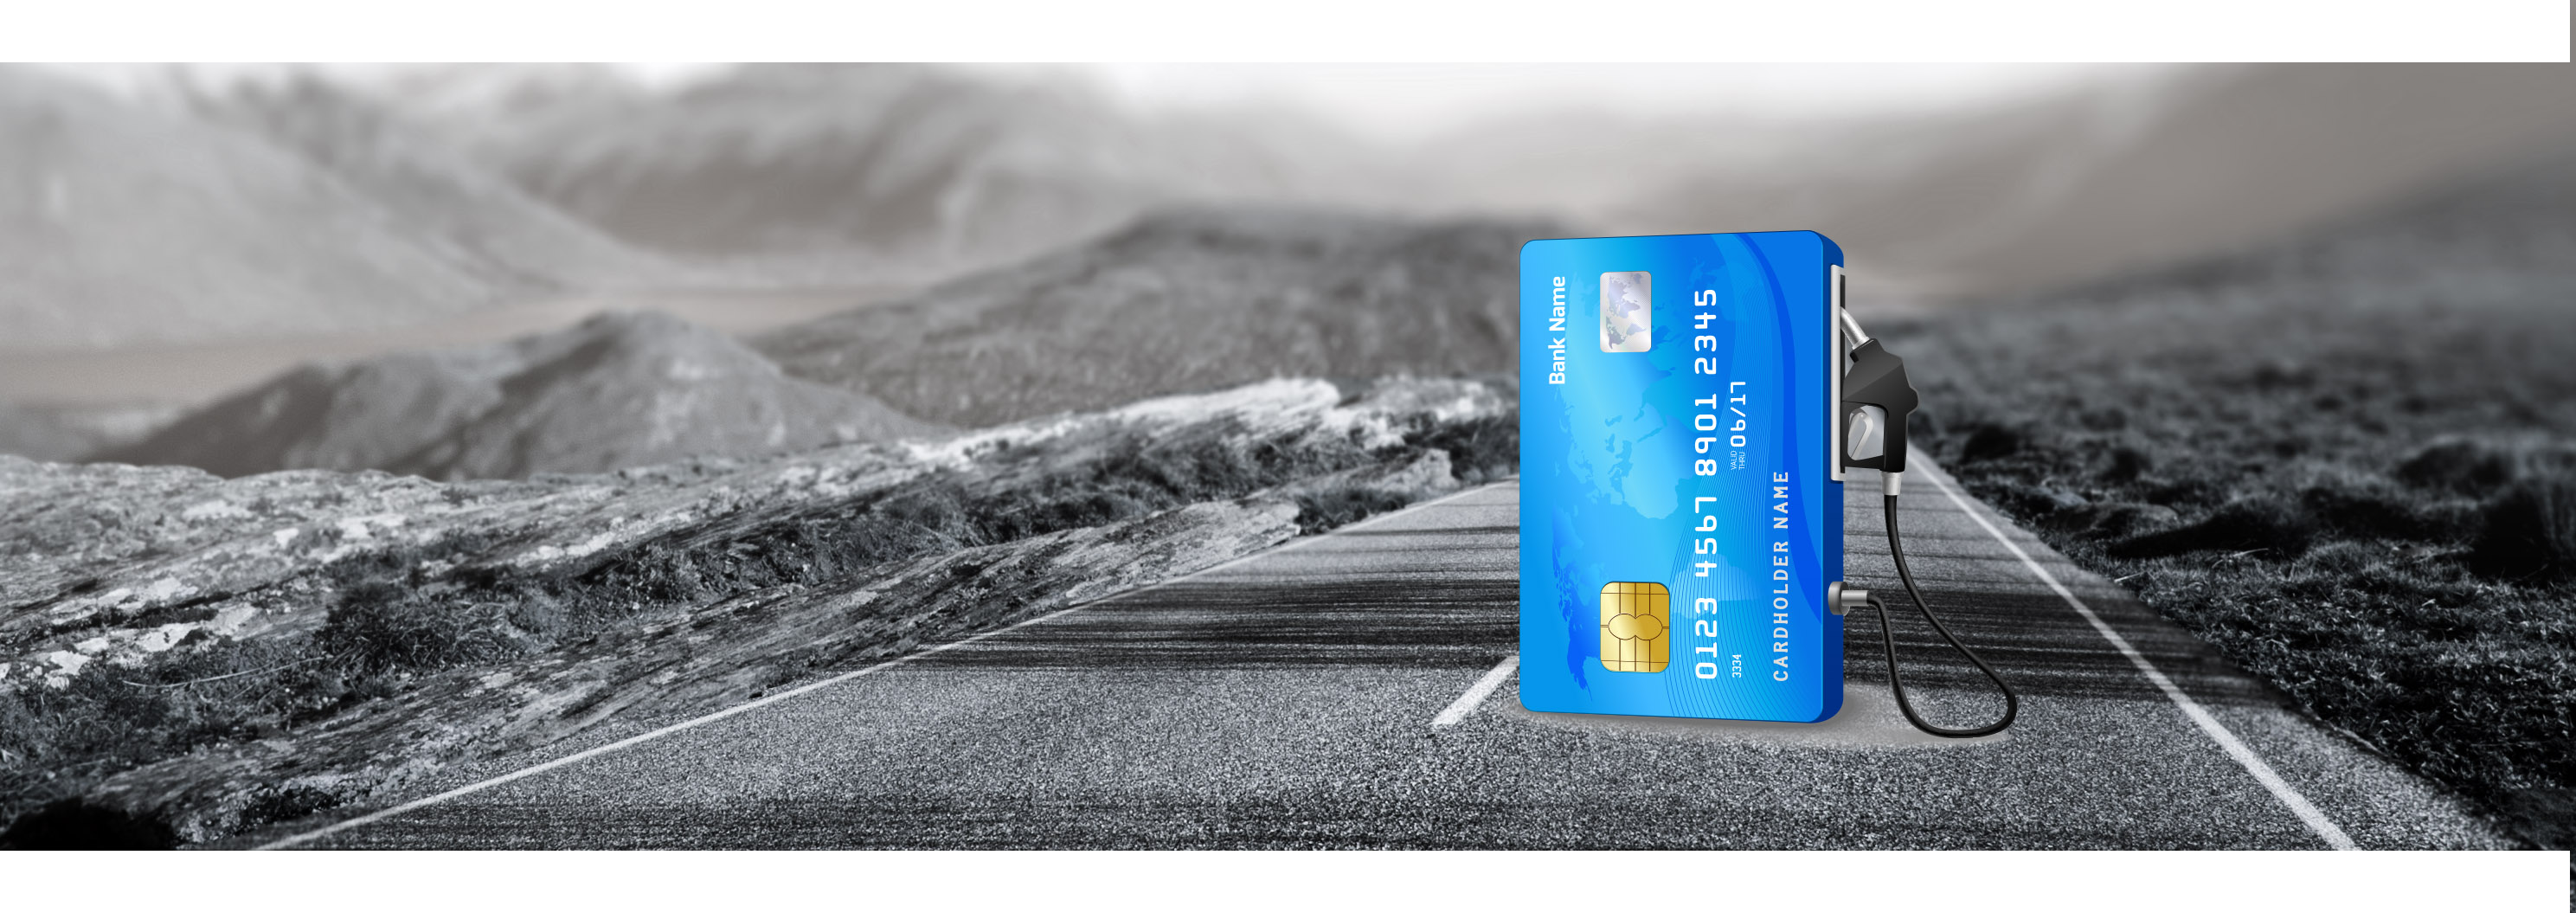 Nouvelle Gamme : Carte Carburant !